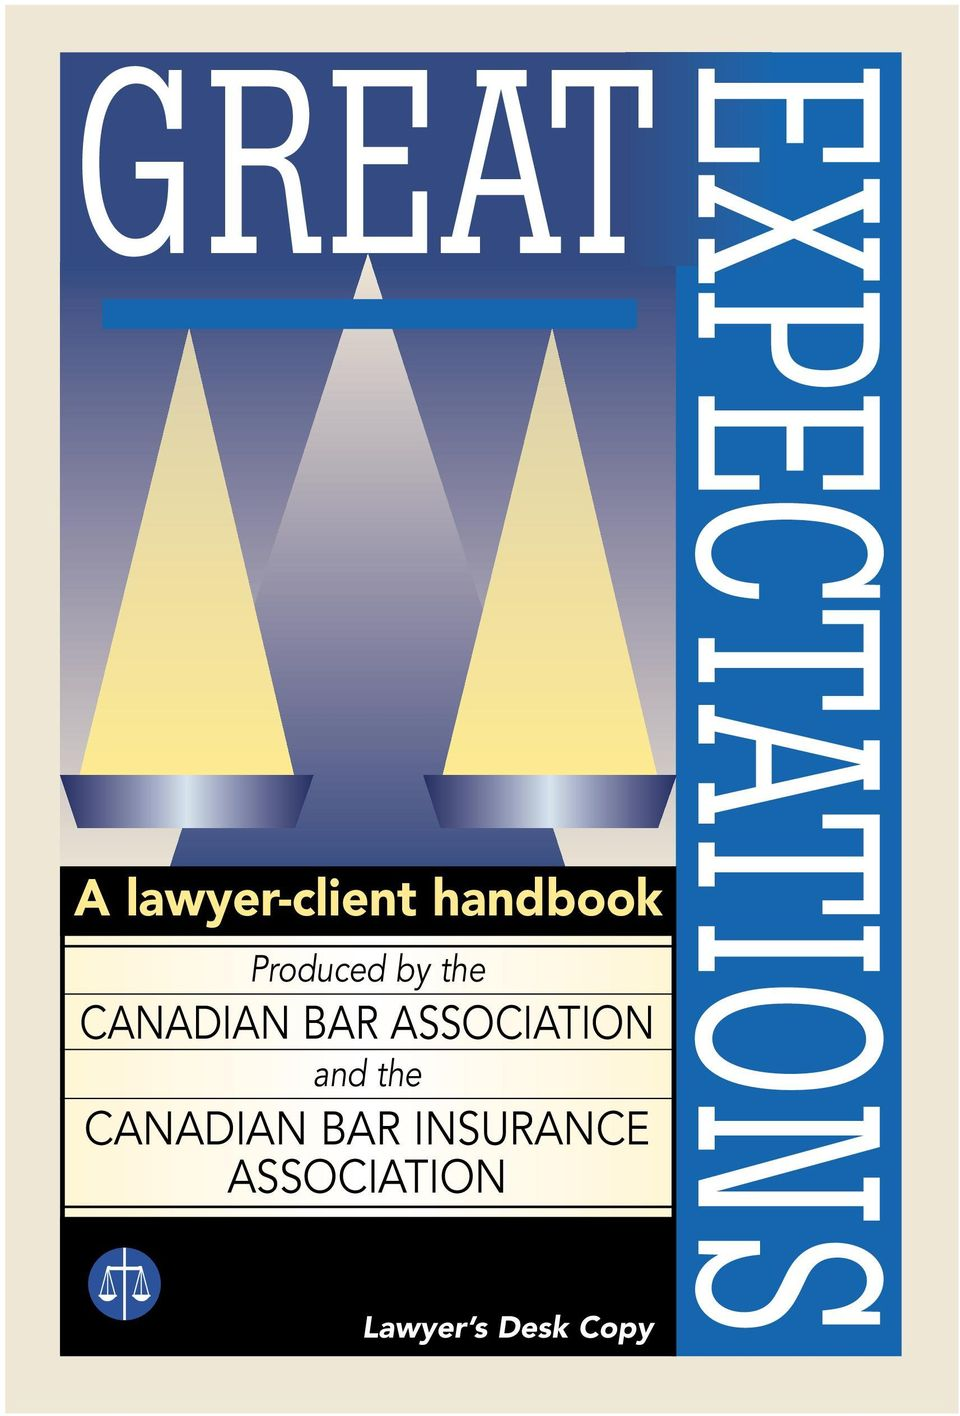 ASSOCIATION and the CANADIAN BAR